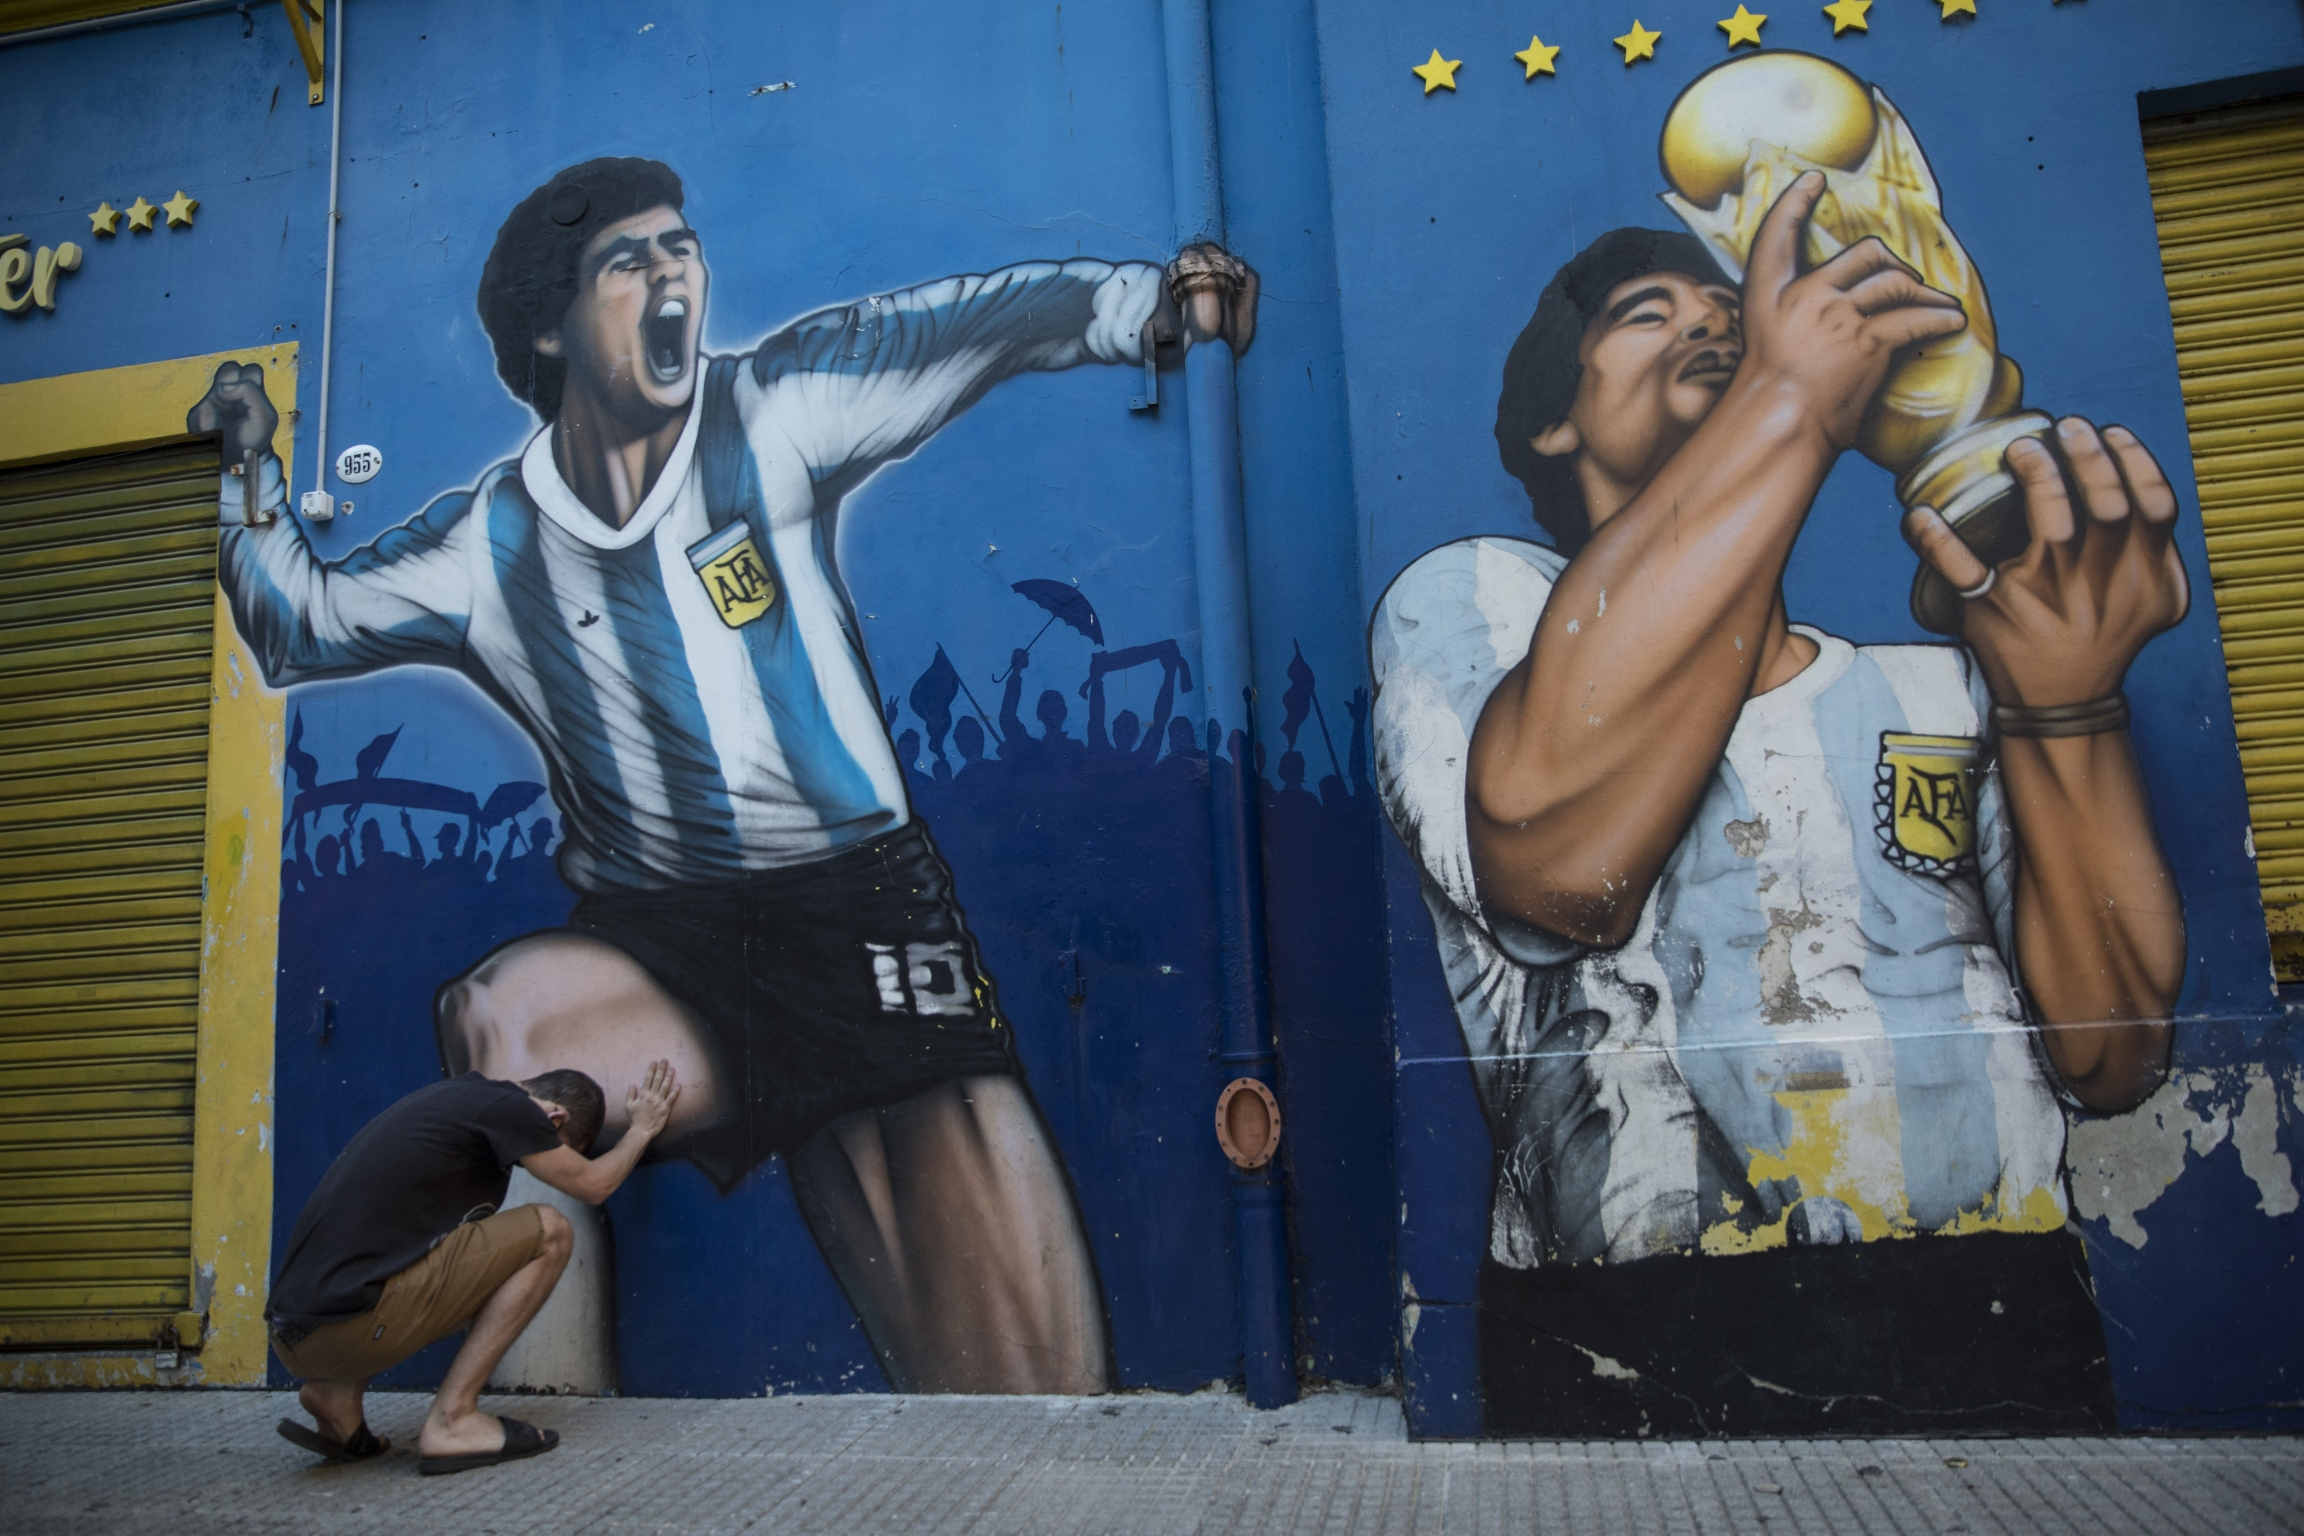 A man prays while touching a painting of Diego Maradona near the Boca Juniors stadium in Buenos Aires, Argentina, Nov. 27, 2020.